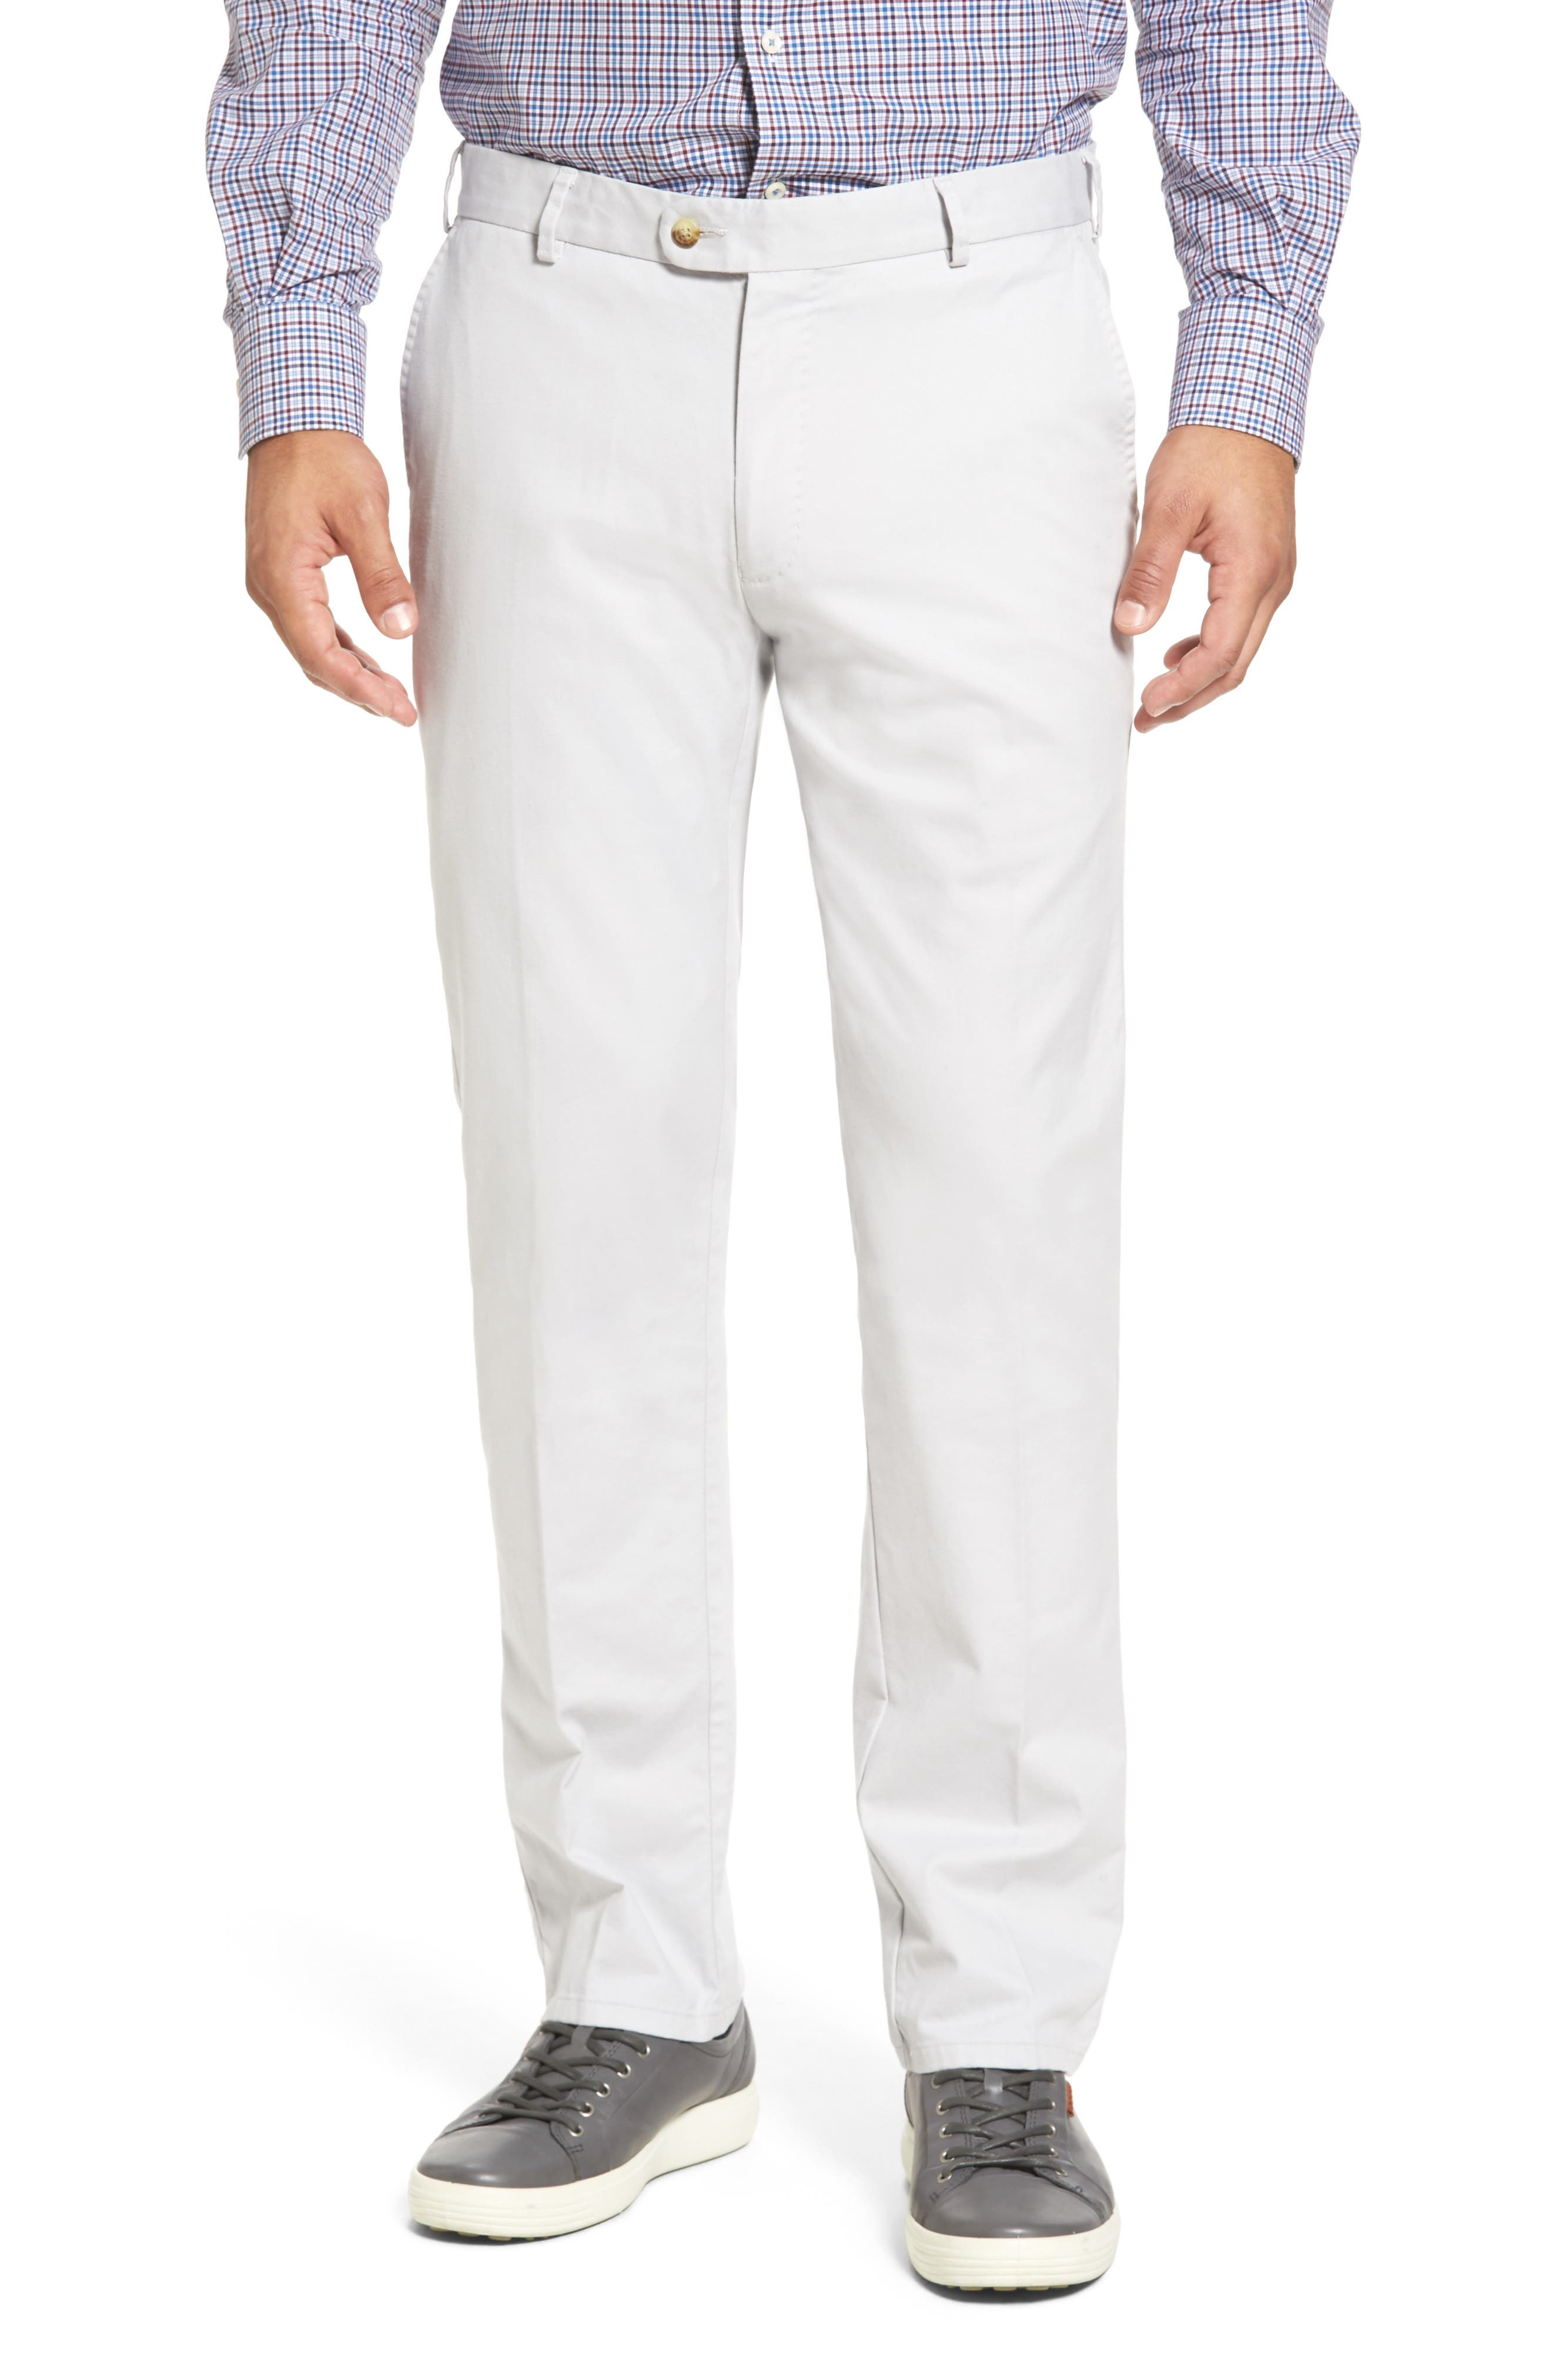 PETER MILLAR Twill Pants, Main, color, 050